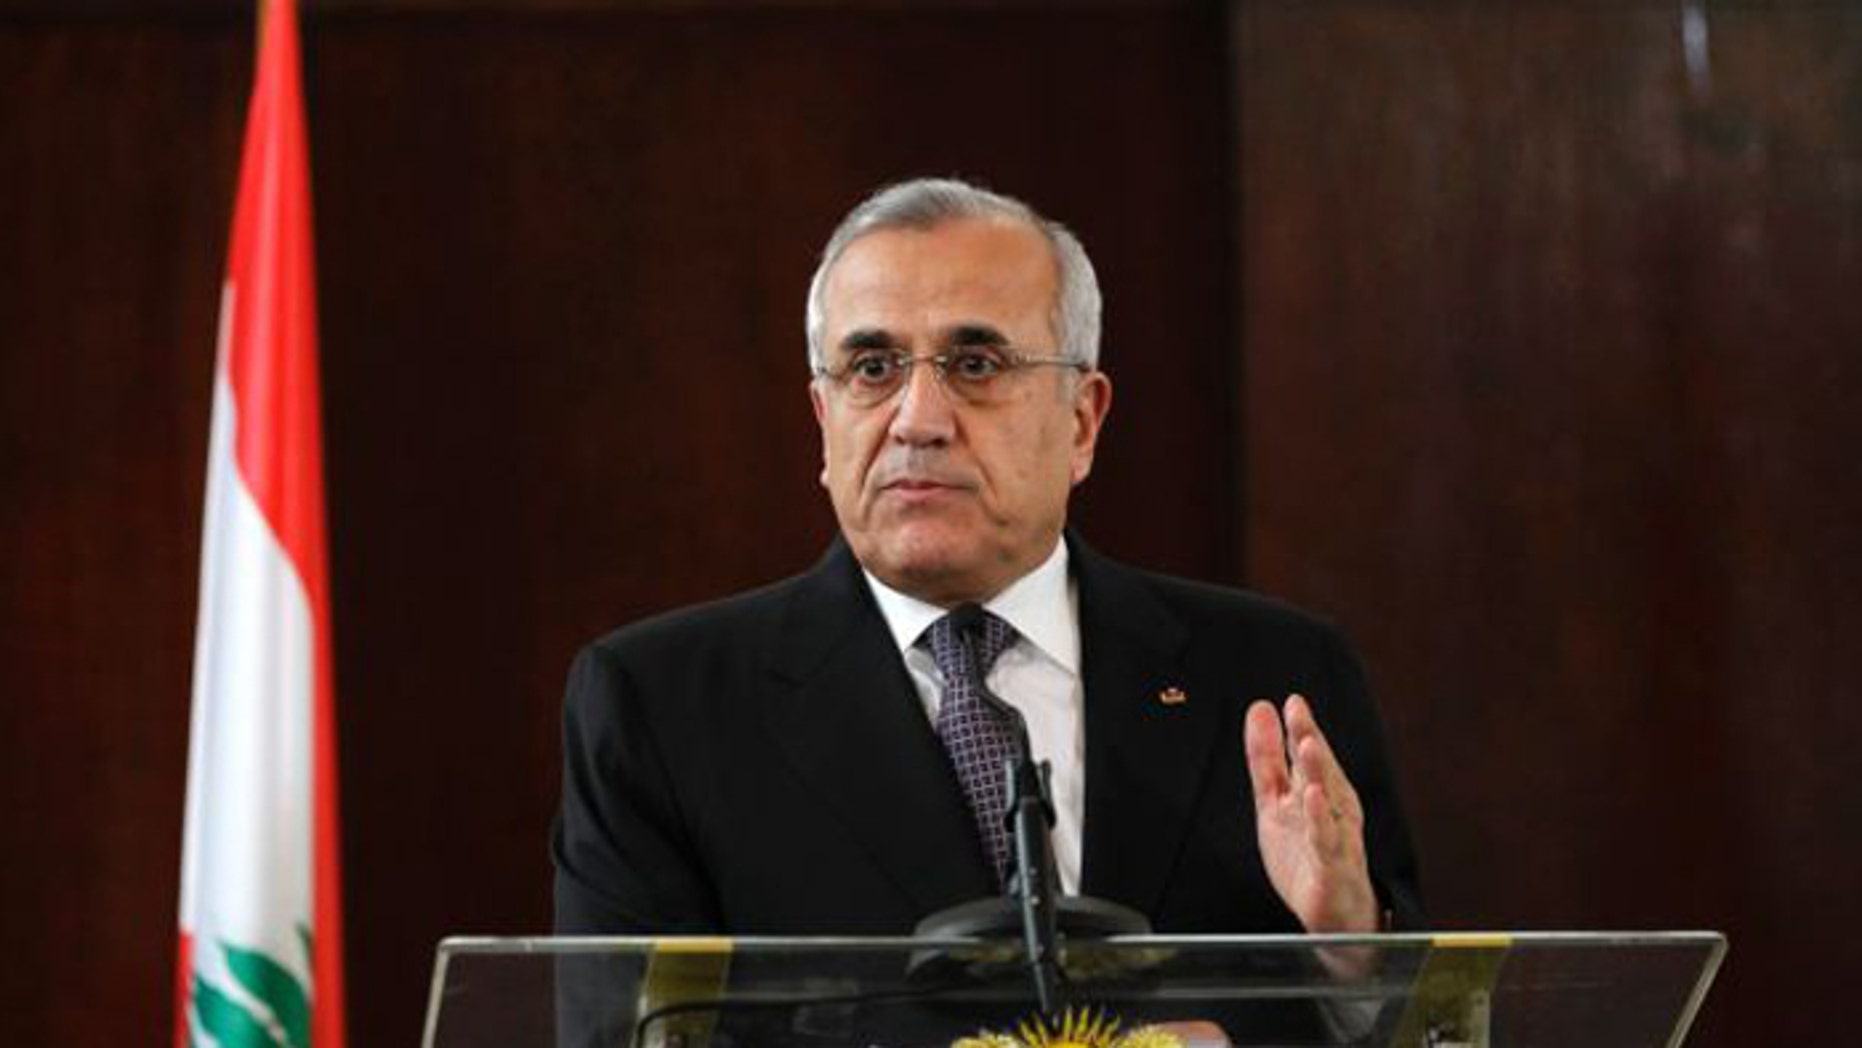 When Lebanese President Michel Sleiman stepped down last month, it created a vacuum in Lebanon's government. (AP)